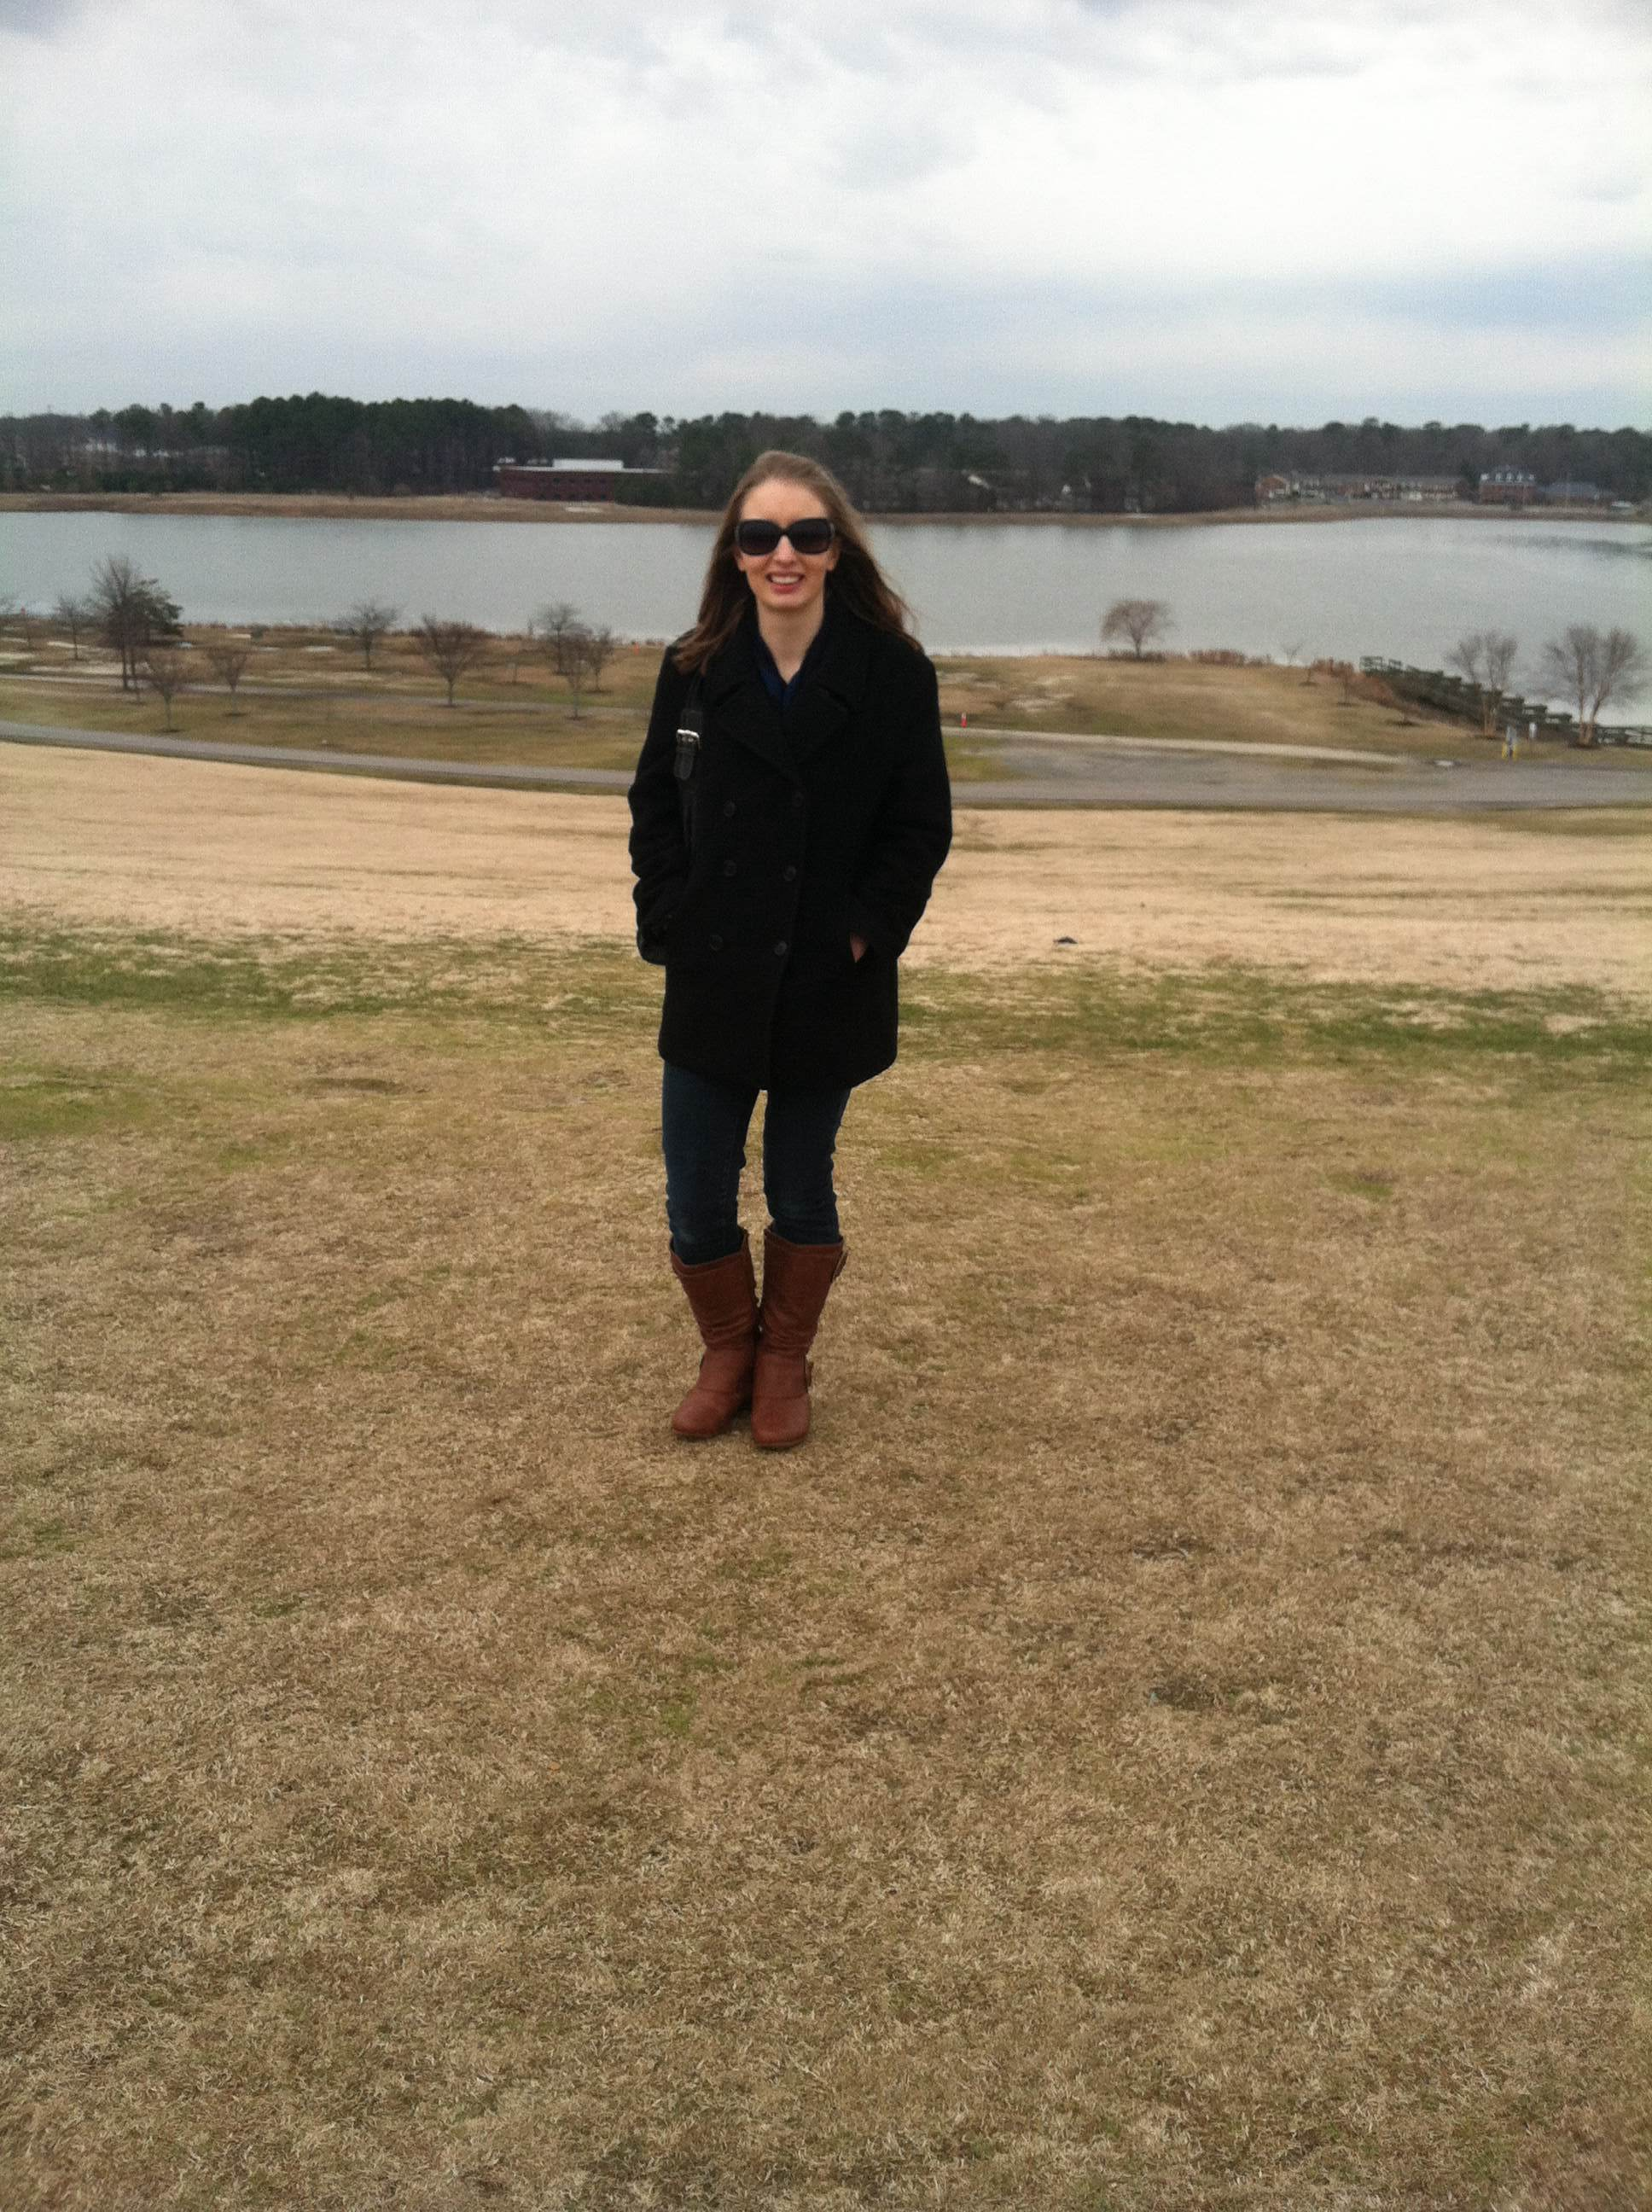 Mount Trashmore in Virginia Beach